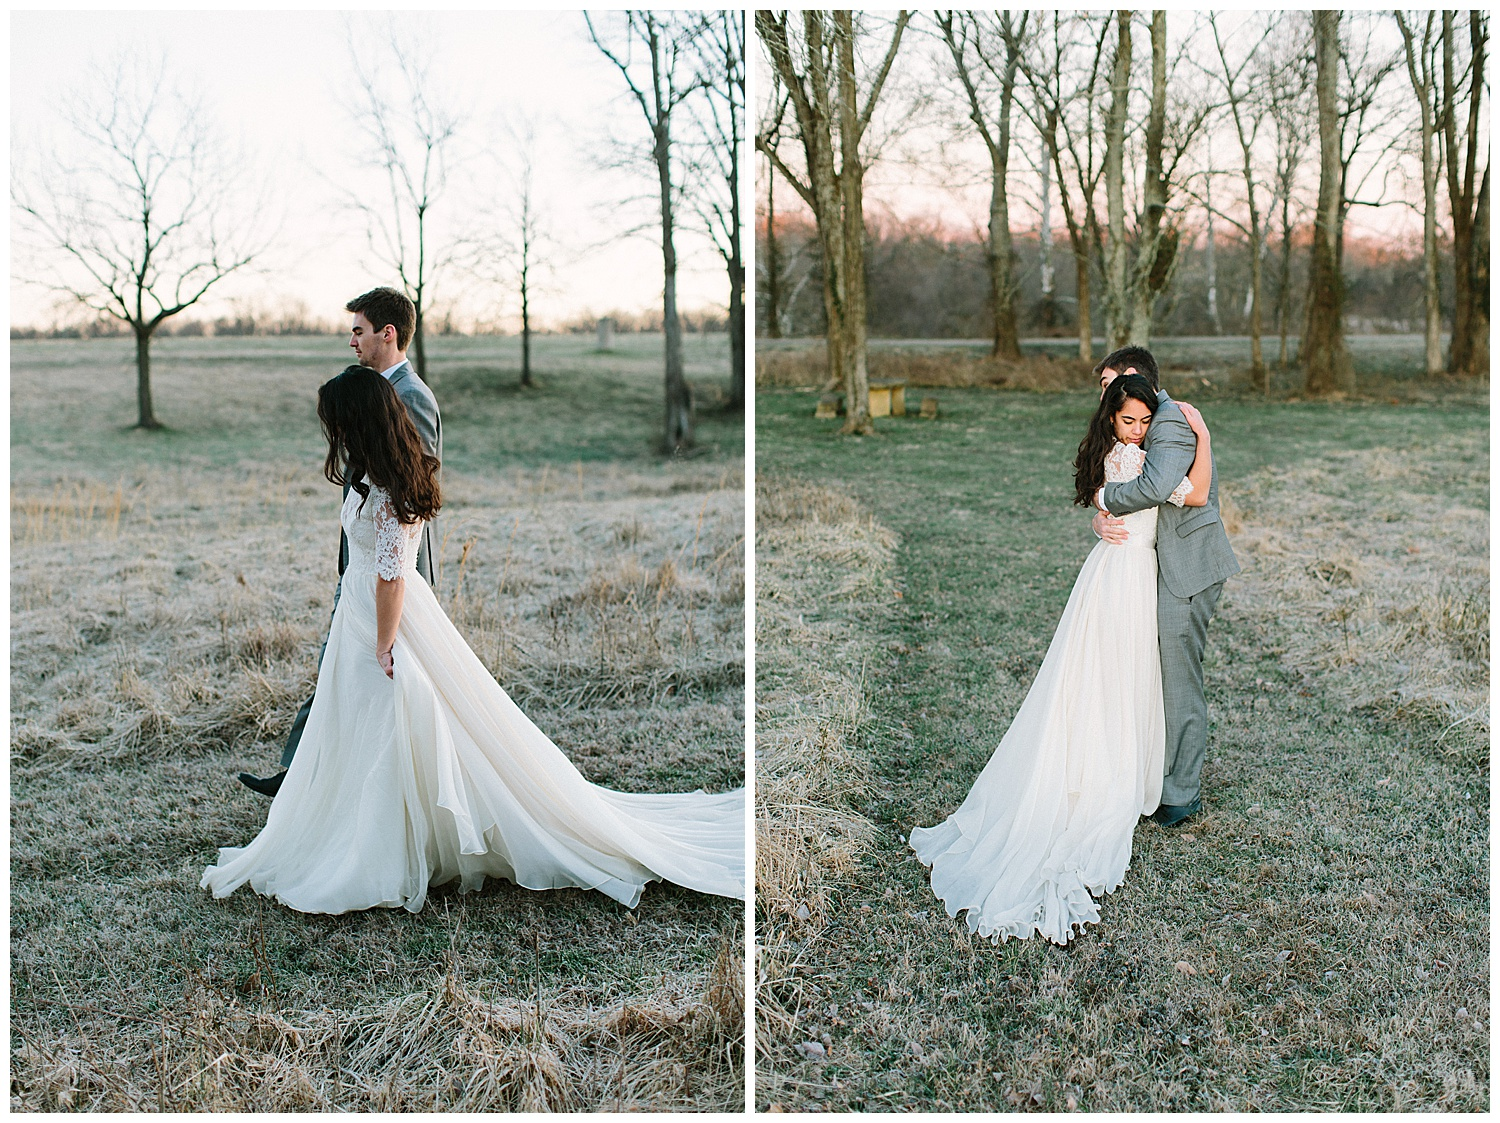 trent.and.kendra.photography.foxhollow.farm.elopement-12.jpg